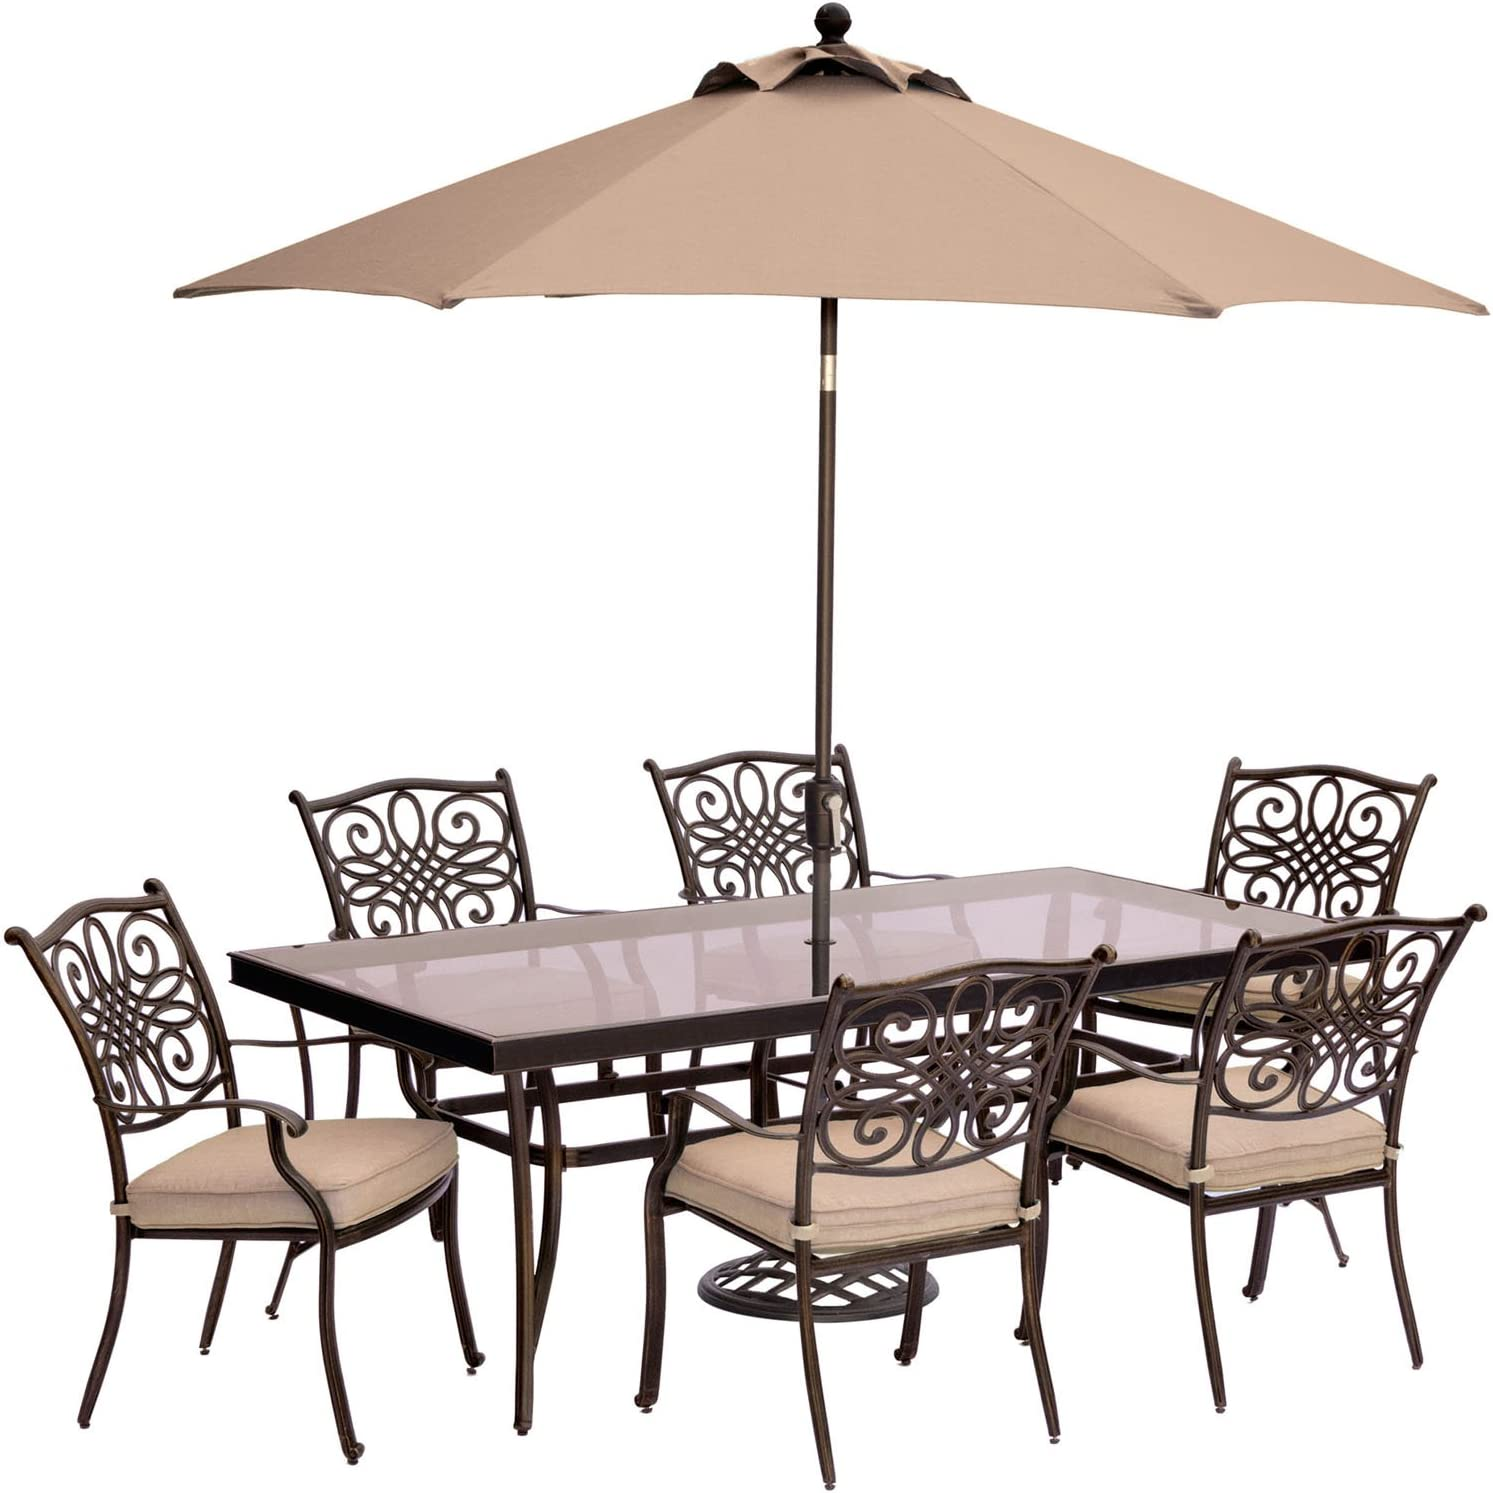 Hanover TRADDN7PCG-SU Traditions 7 Piece Dining Set in Tan with Glass-Top Dining Table, 9' Umbrella and Stand